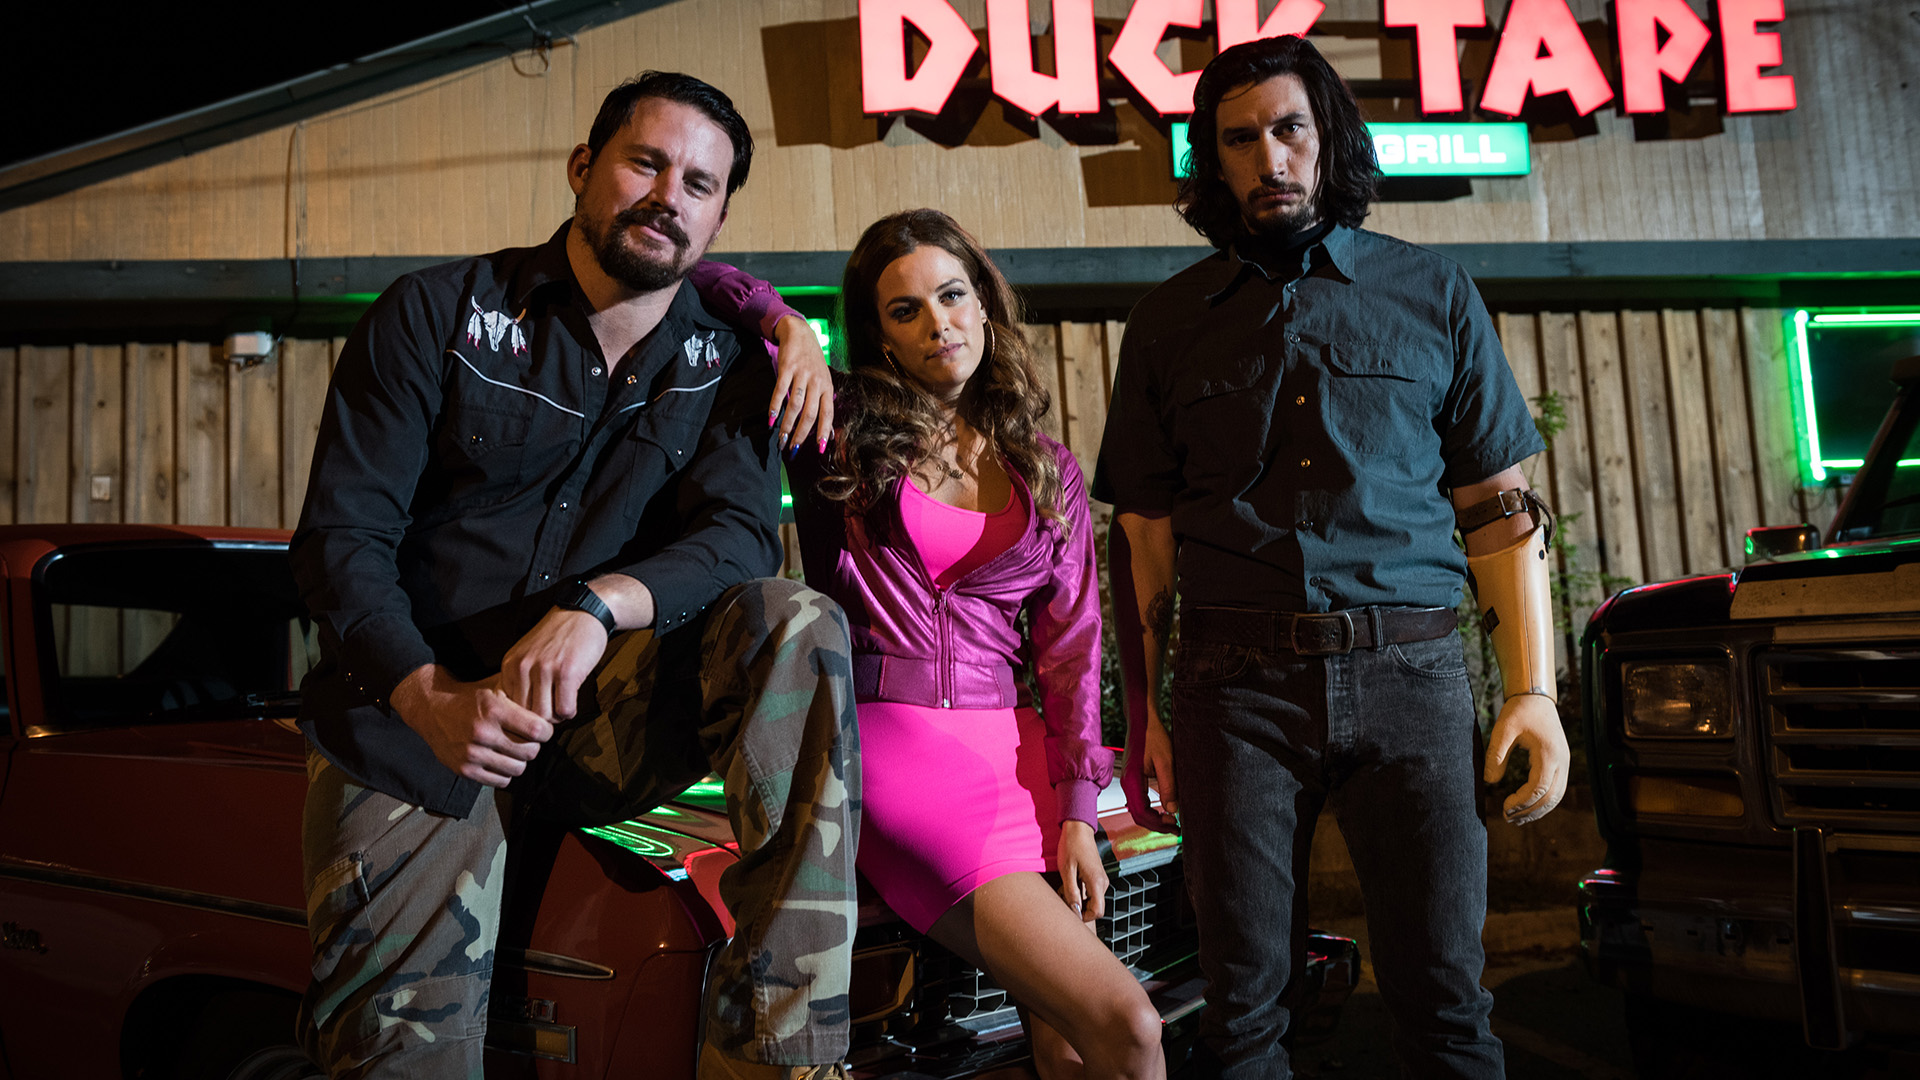 Movie reviews: 'The Hitman's Bodyguard,' 'Logan Lucky' and 'Wind River'